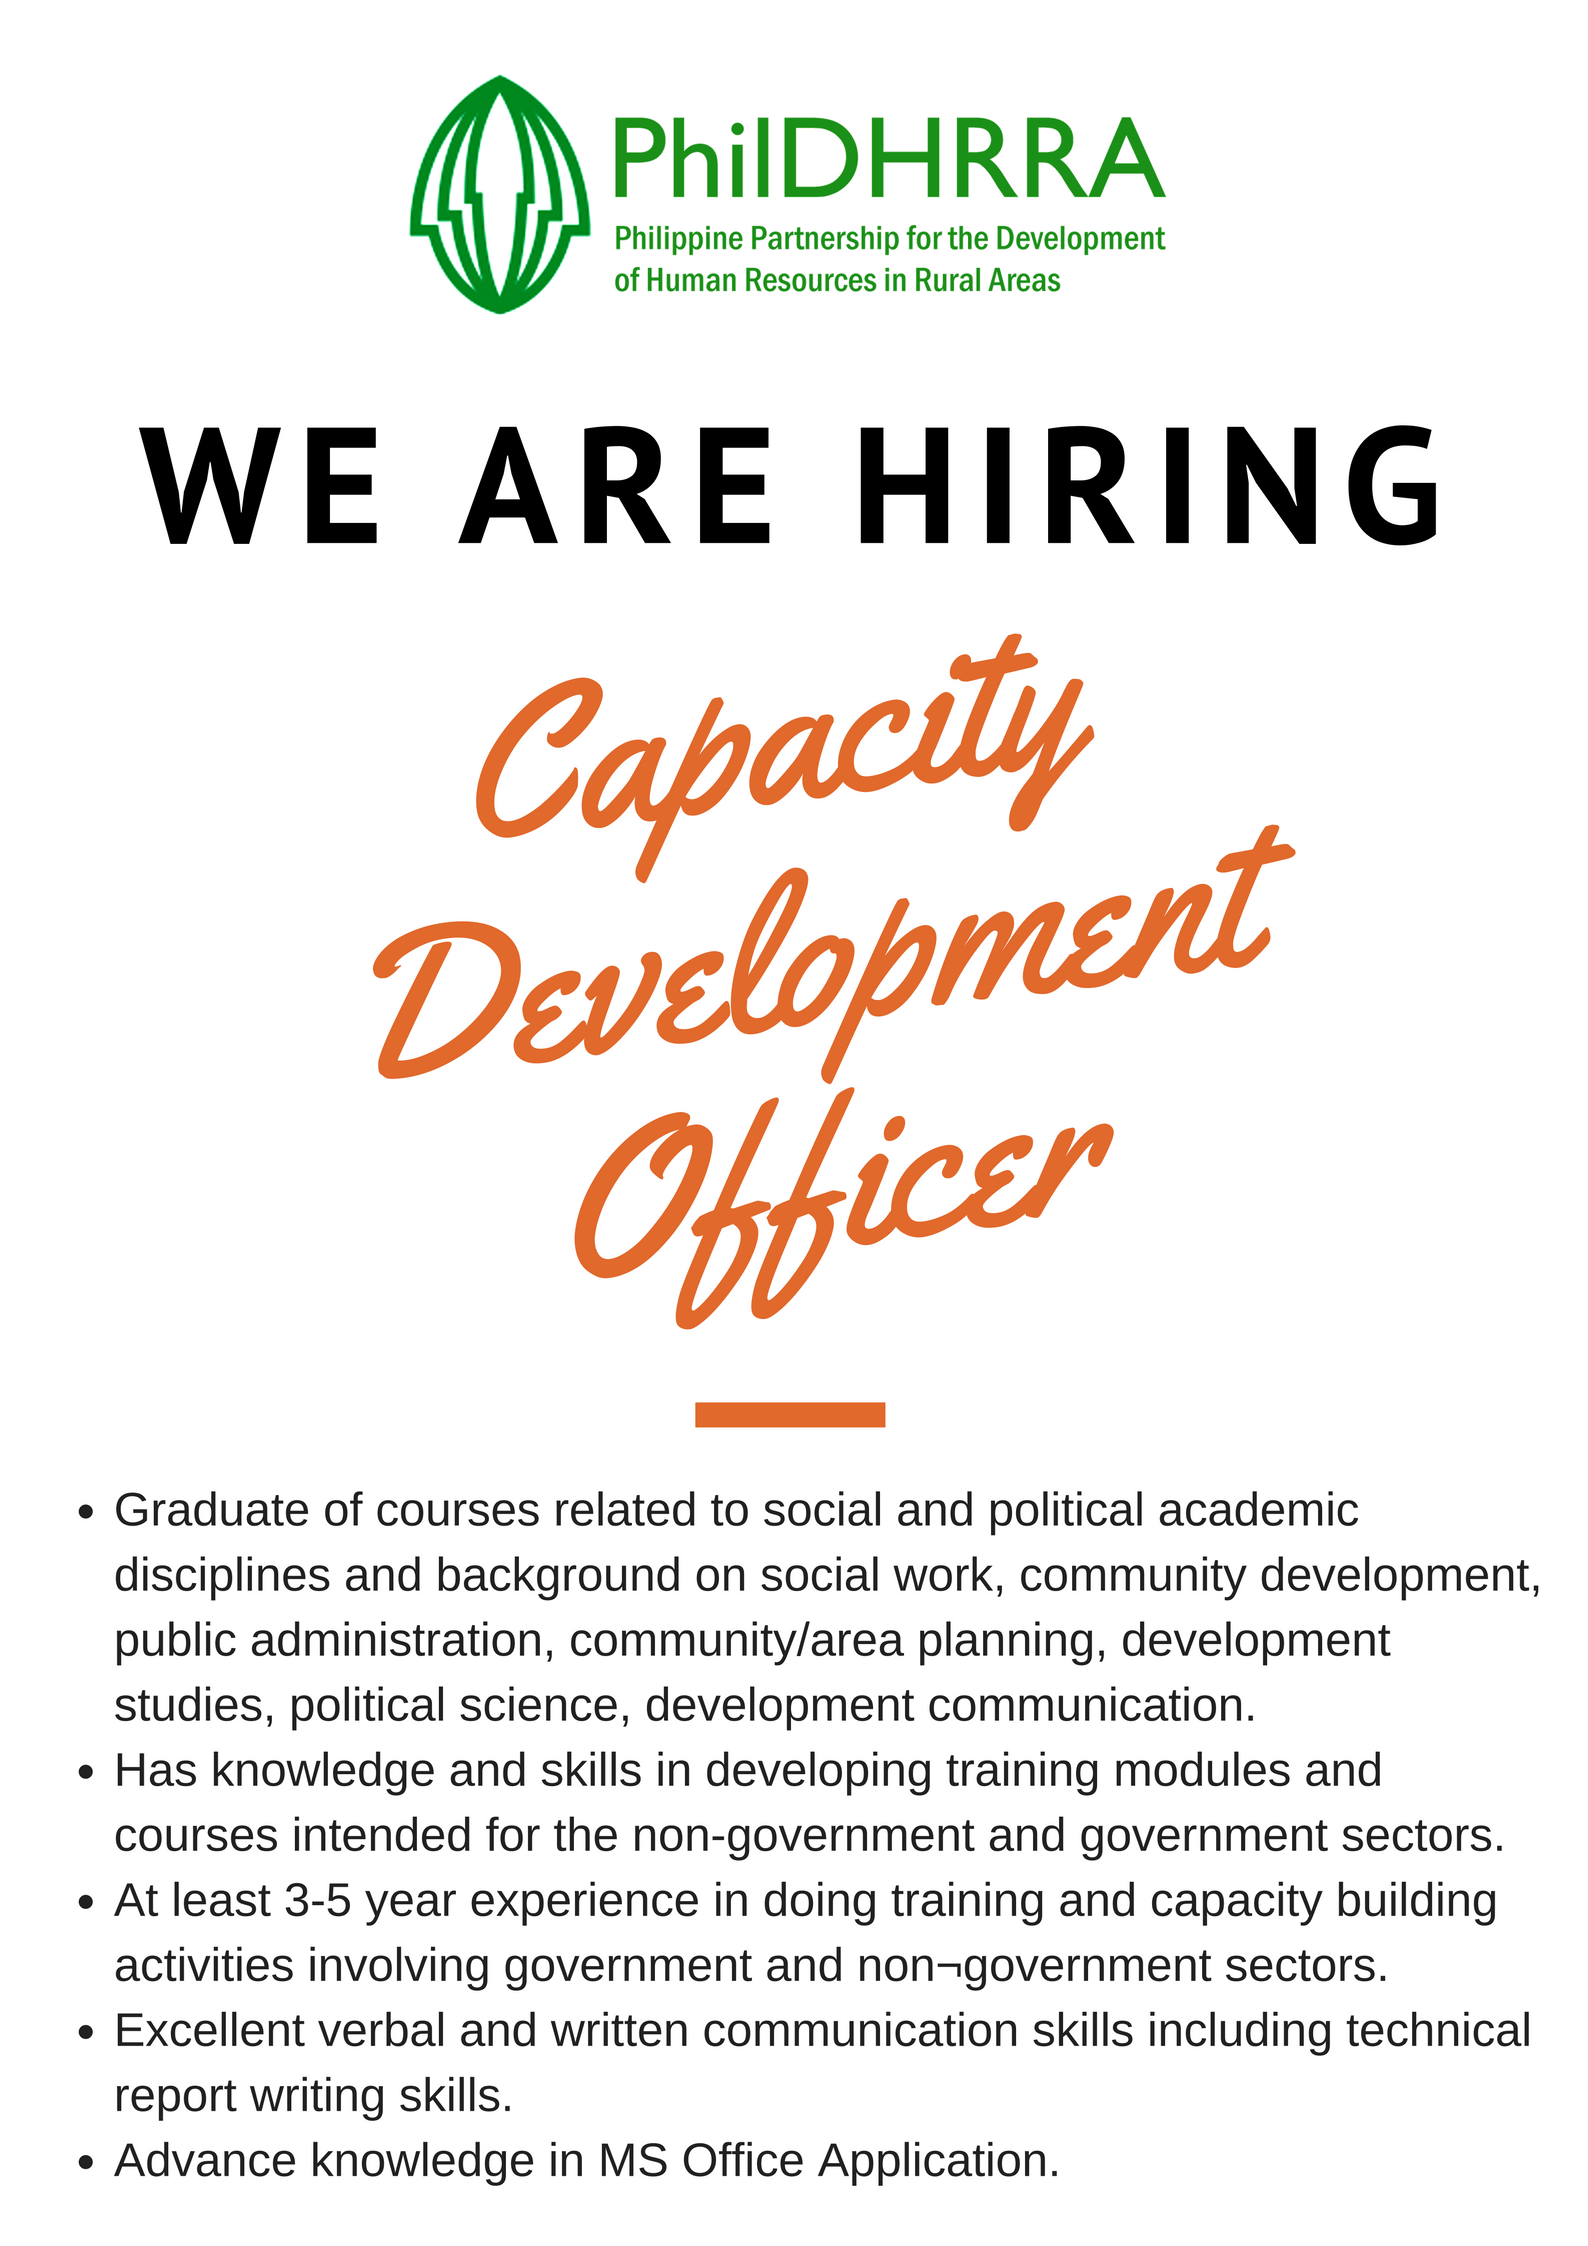 WE ARE HIRING: Capacity Development Officer